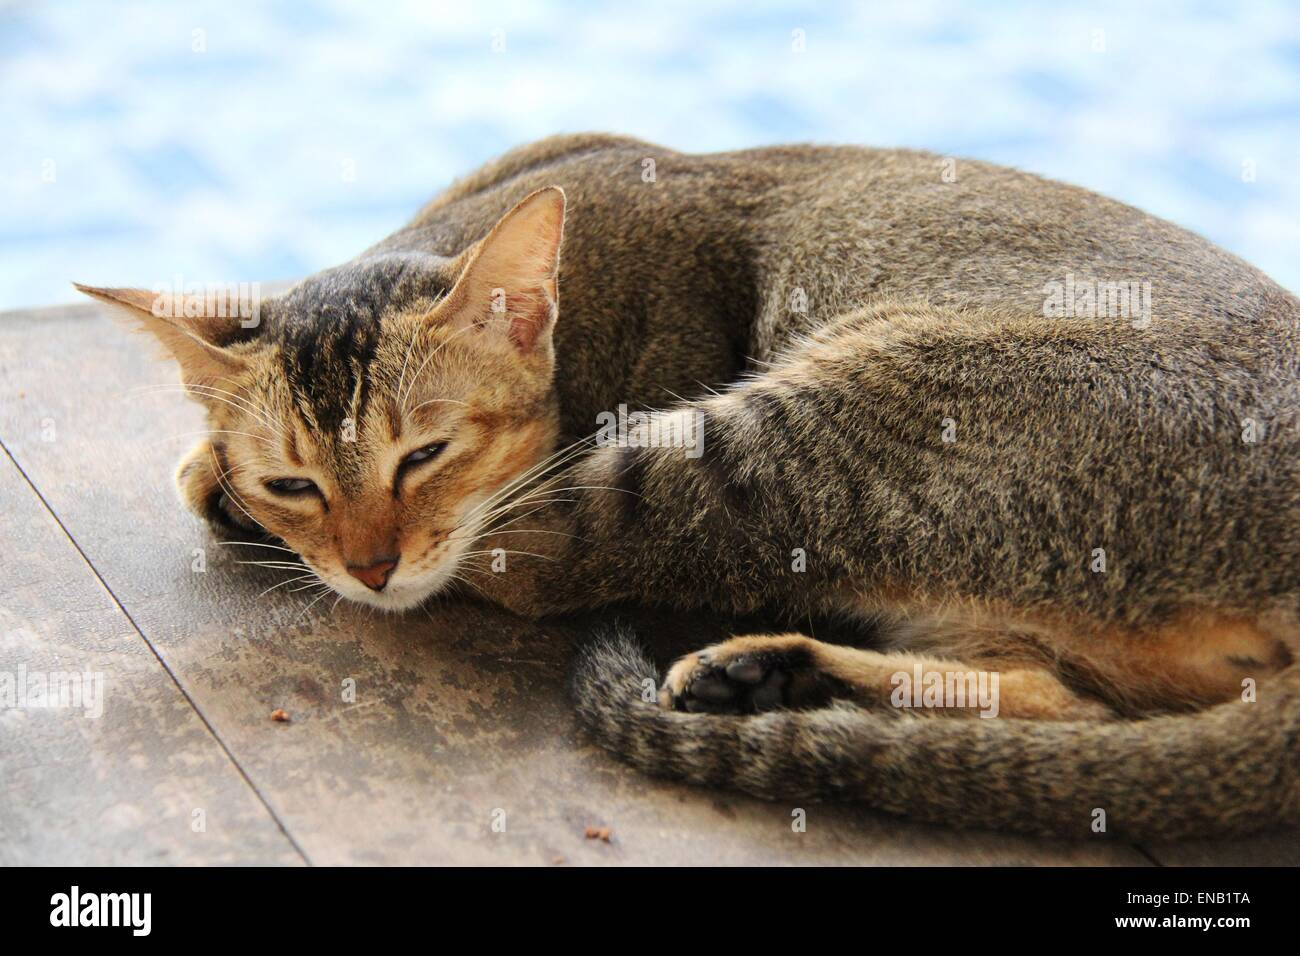 Tabby cat sleeping outside by pools edge under sunlight - Stock Image